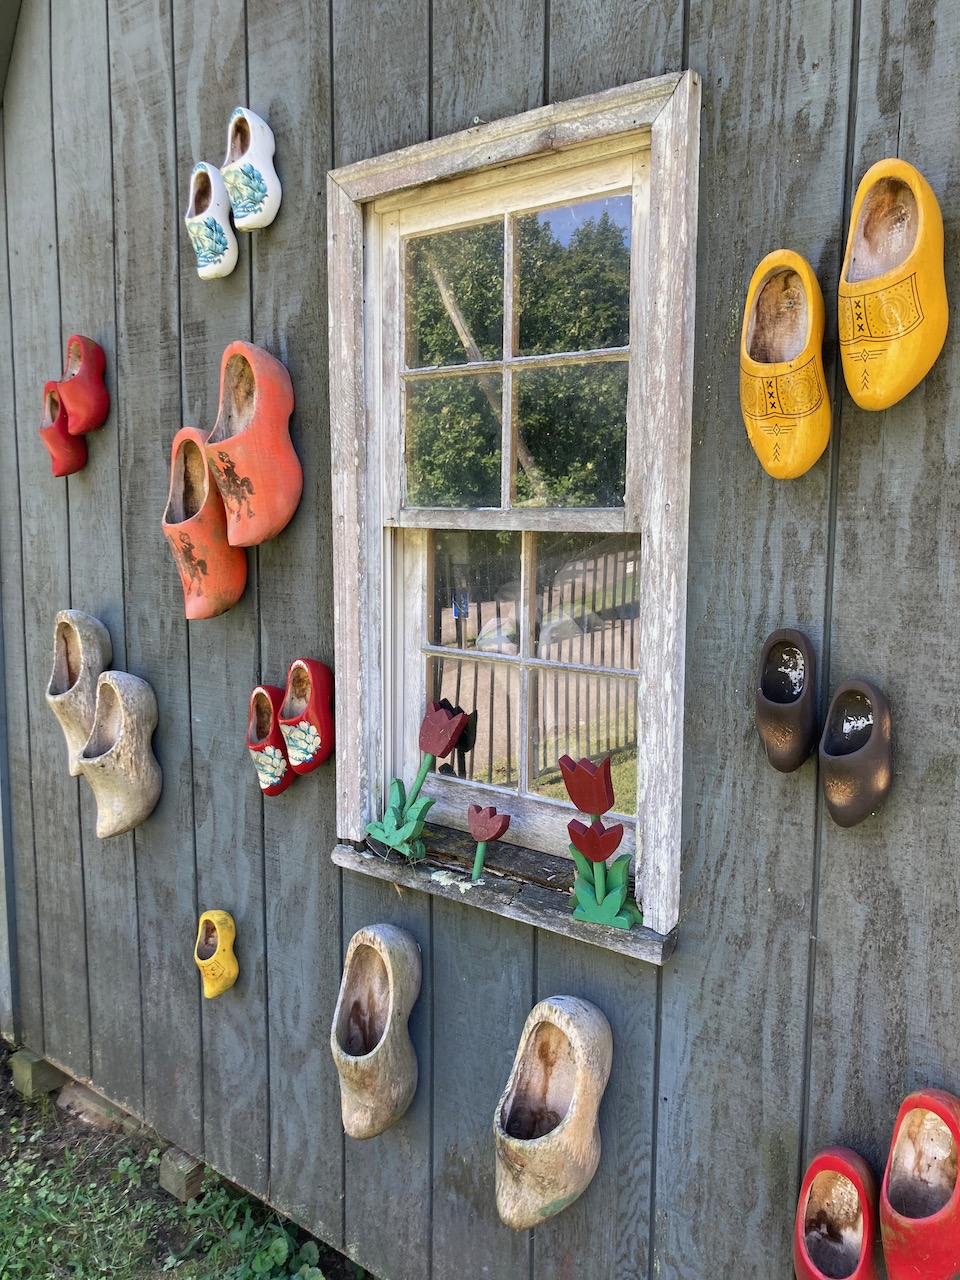 Clogs nailed to side of shed in cemetery.